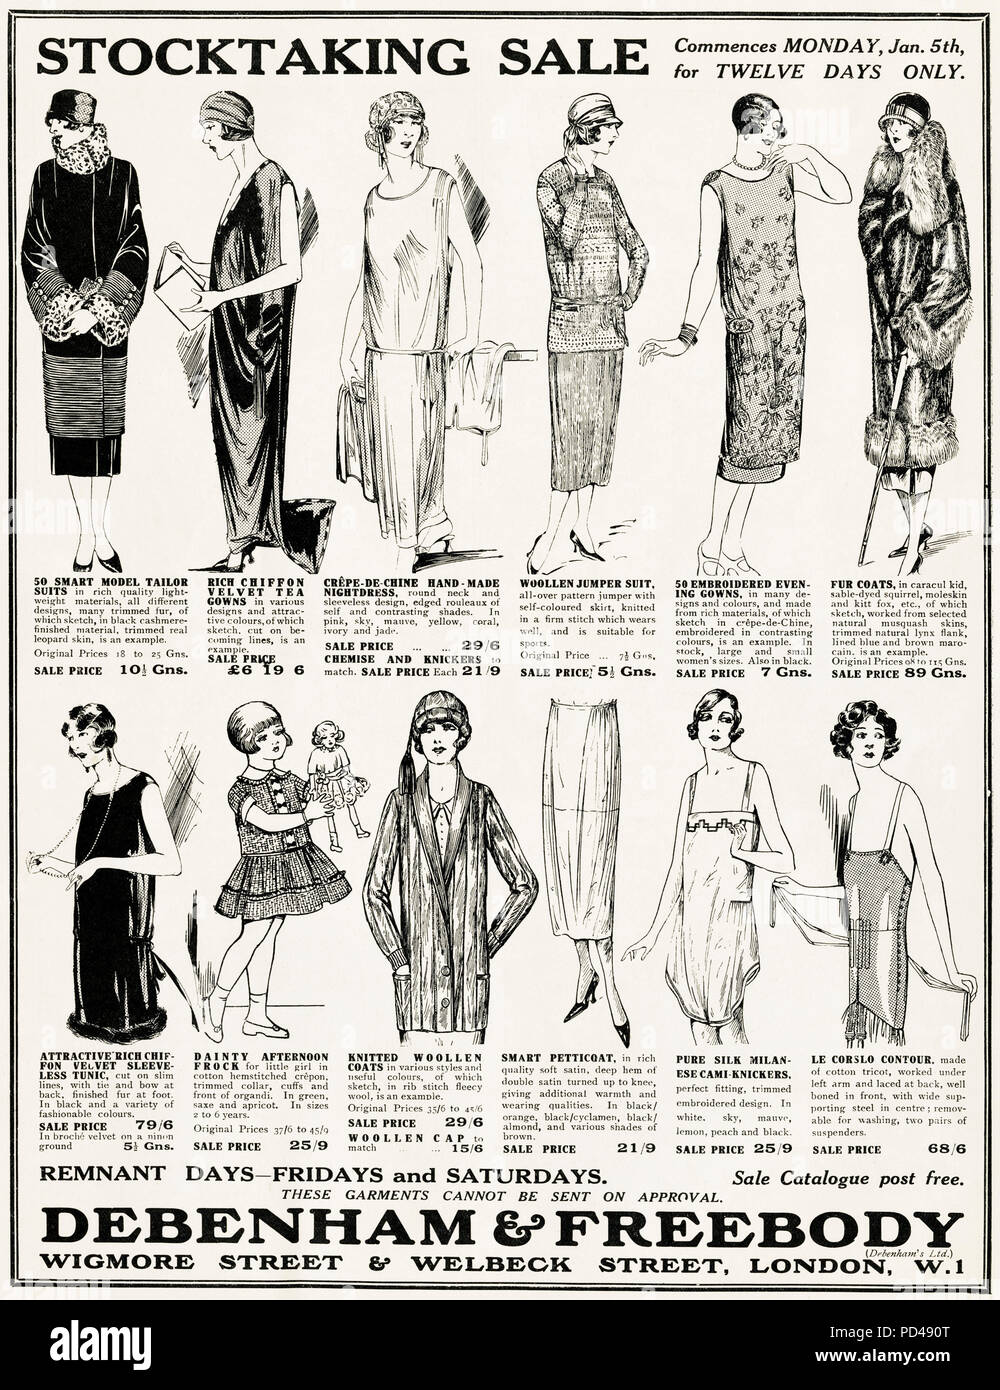 1920s old vintage original advert advertising ladies fashion stocktaking sale at Debenham & Freebody of London in English magazine circa 1924 - Stock Image